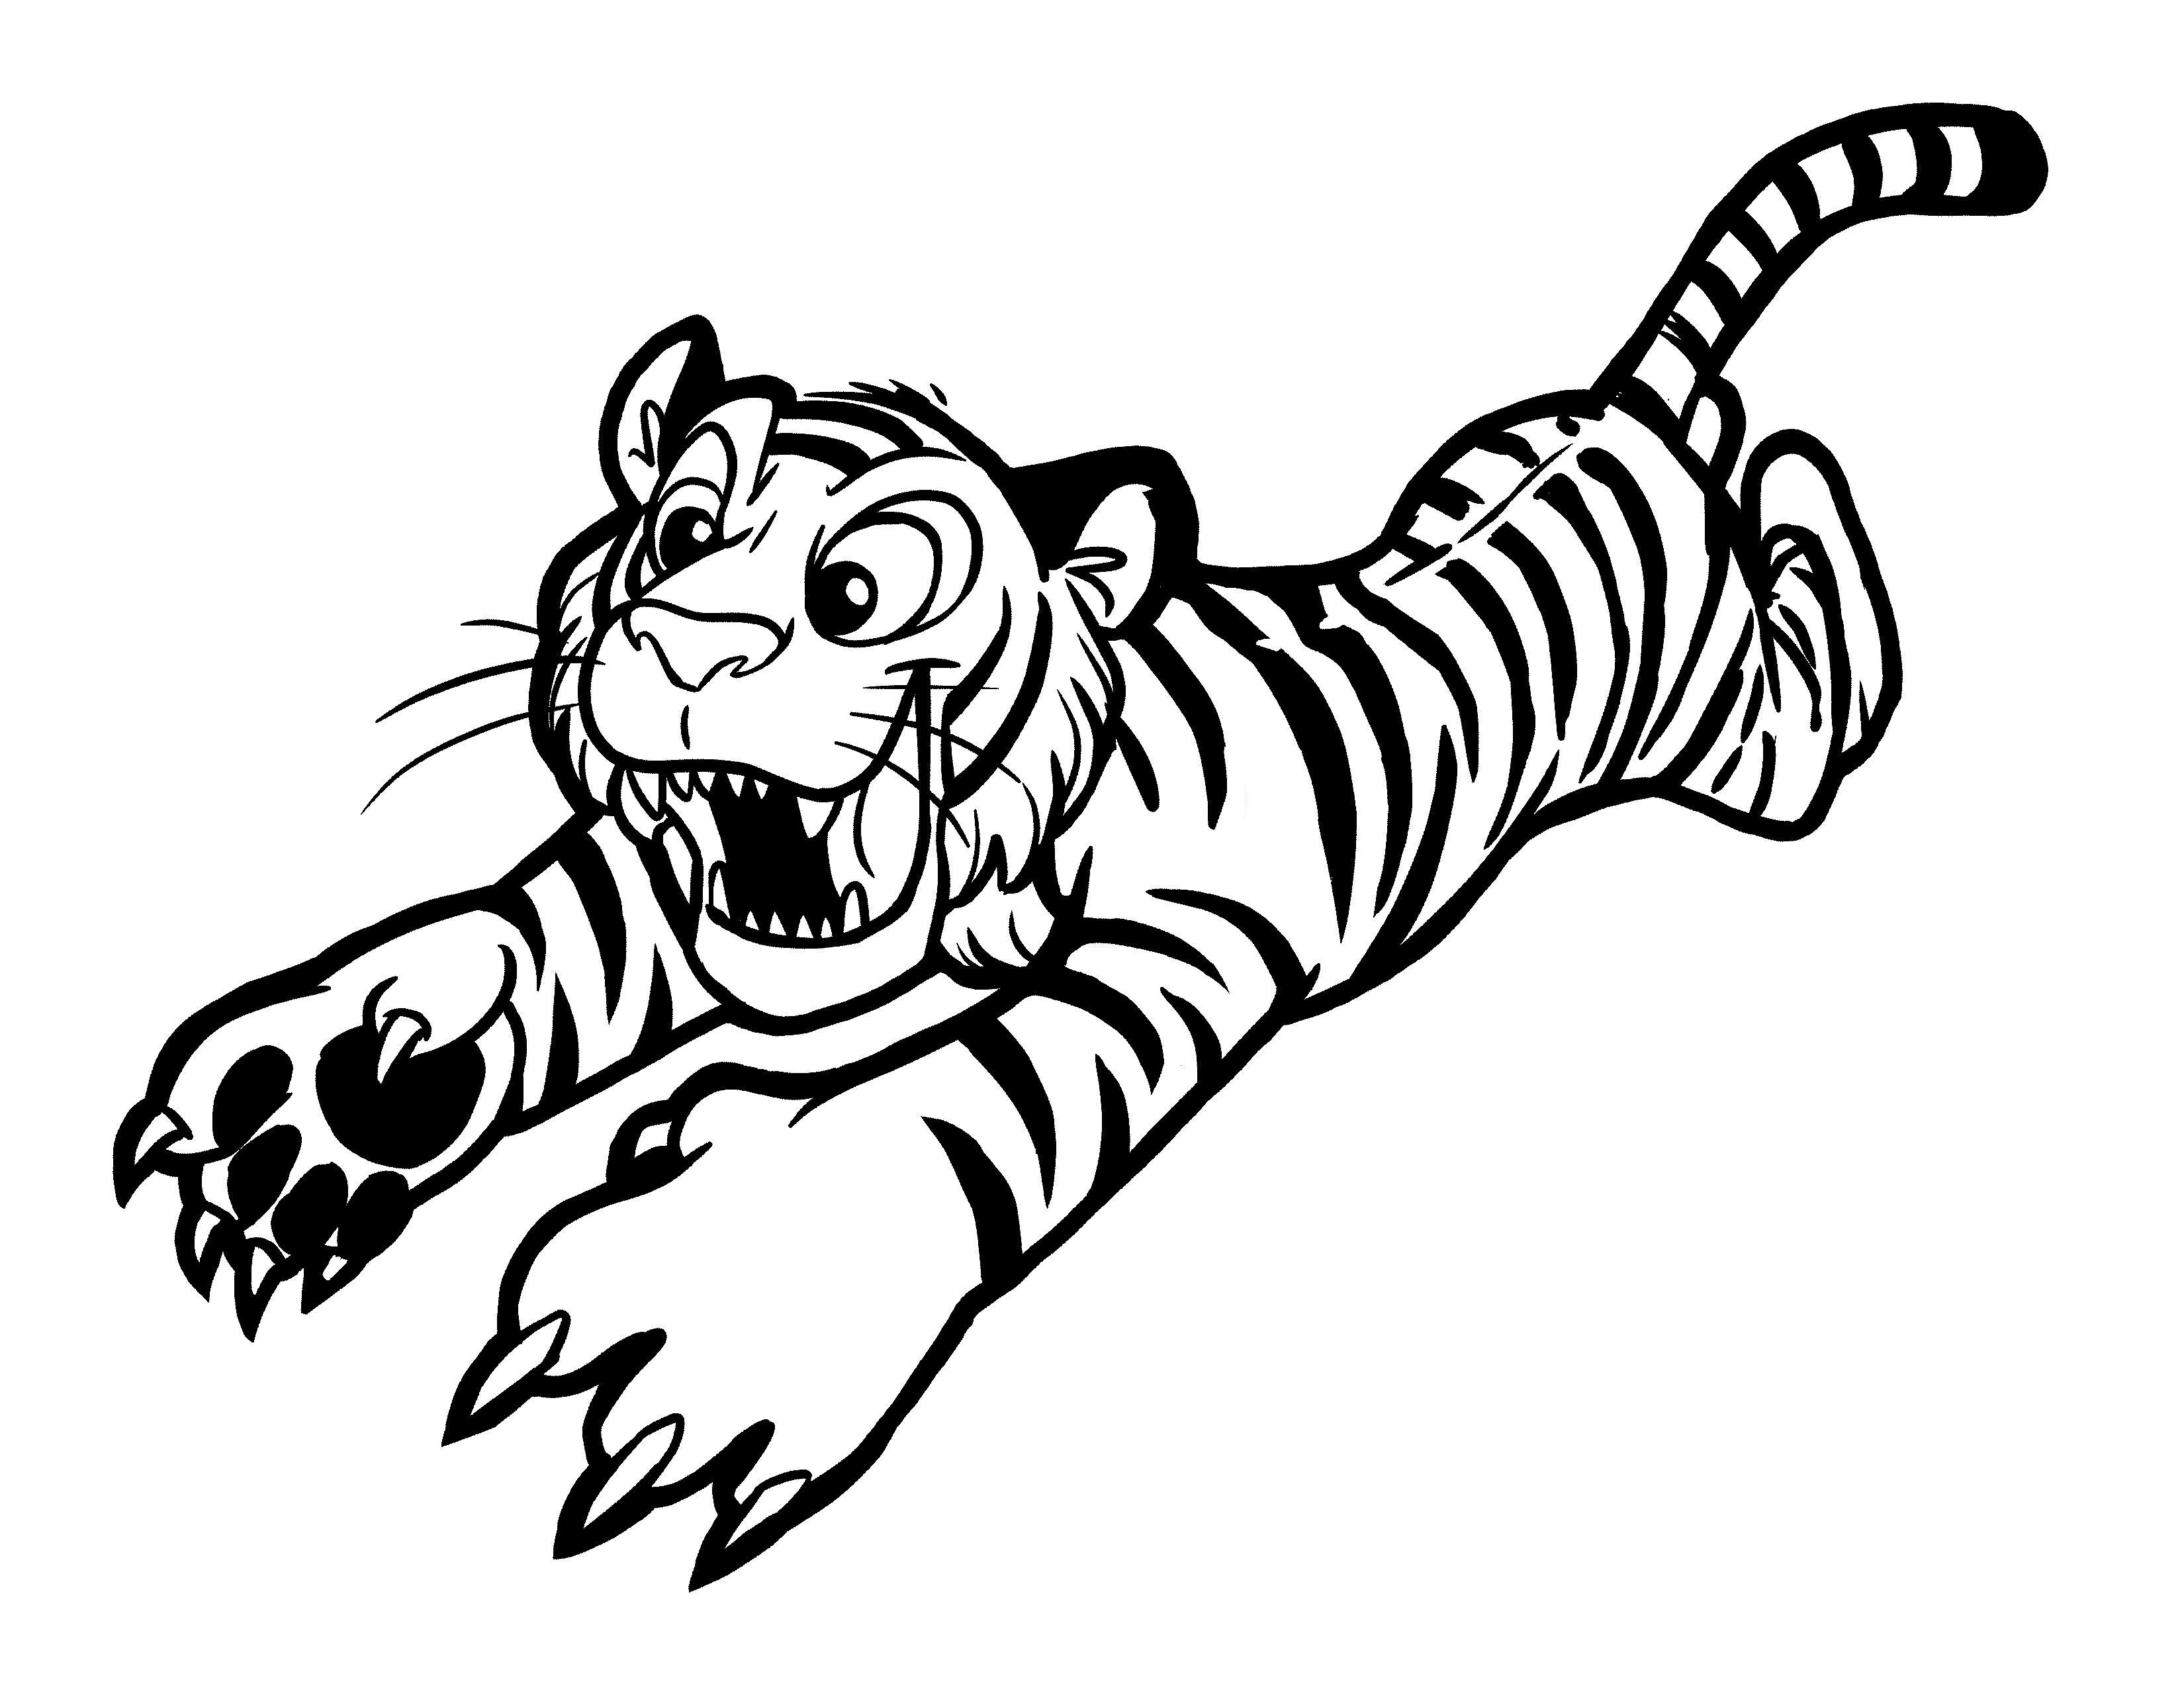 3300x2550 Clemson Tigers Coloring Pages Tiger Printable Bandhawa Dynu